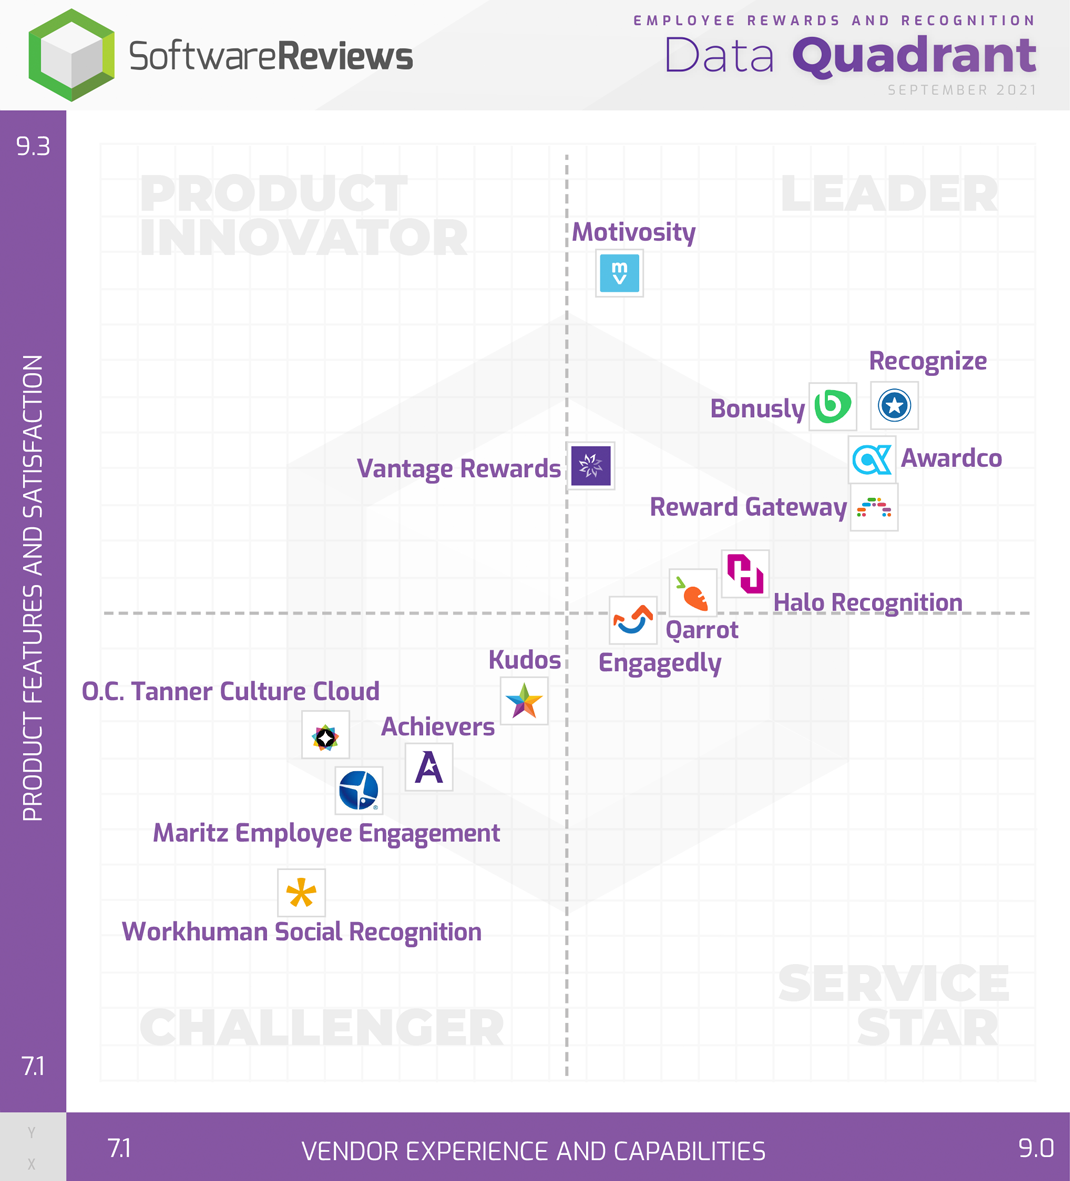 Employee Rewards and Recognition Data Quadrant